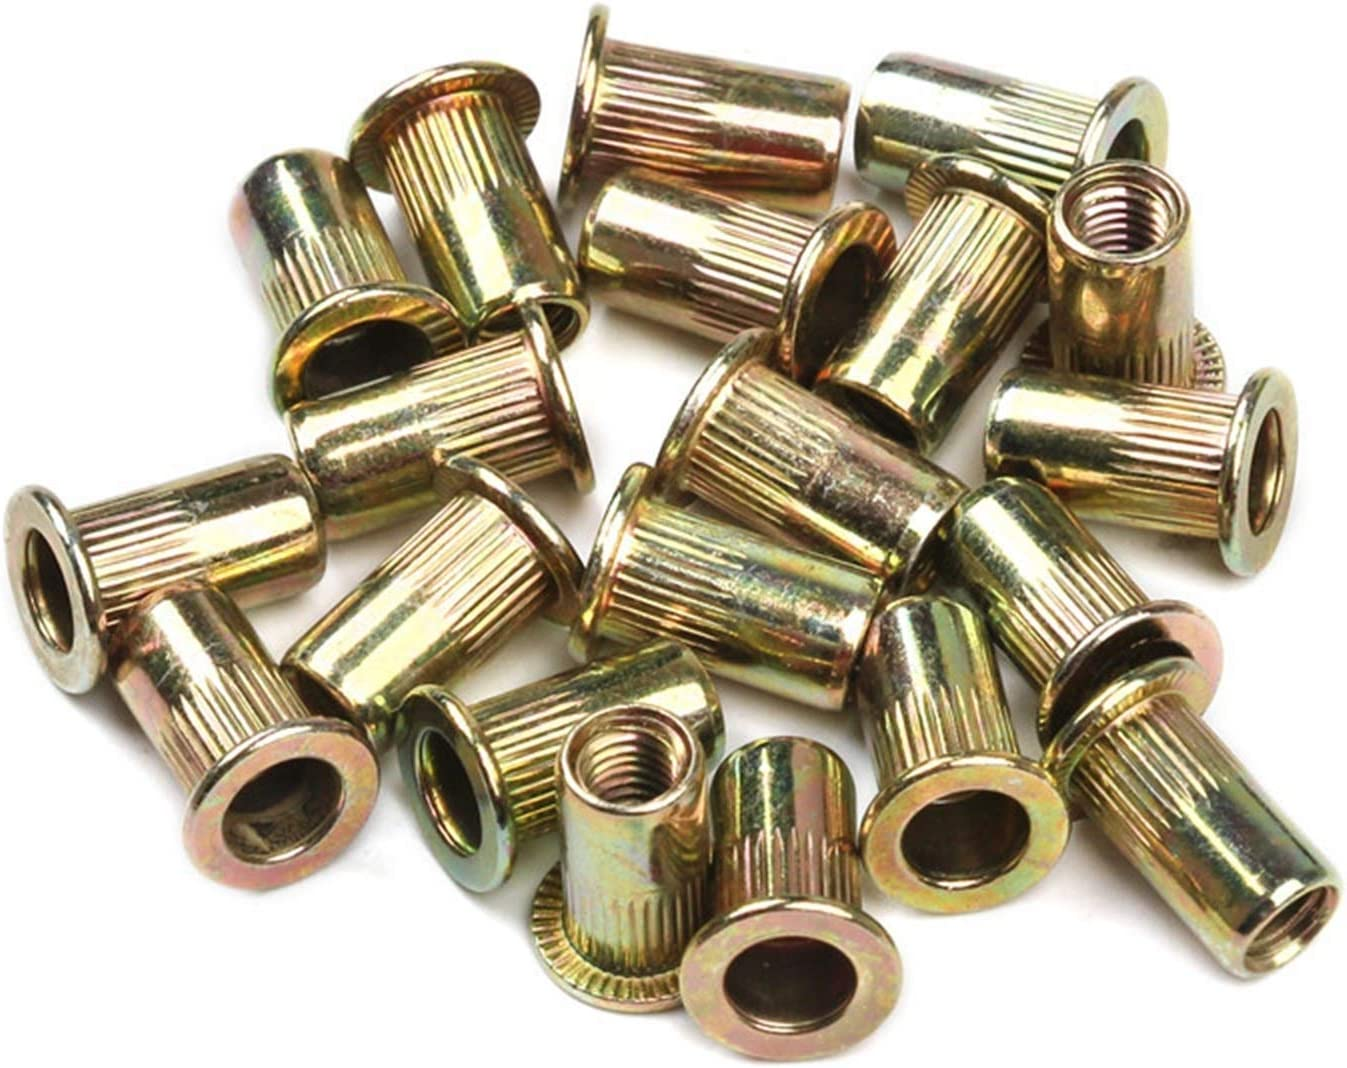 JBZD Rivet 100 Multi-Size Steel Max 80% OFF Stainless Superior Nuts